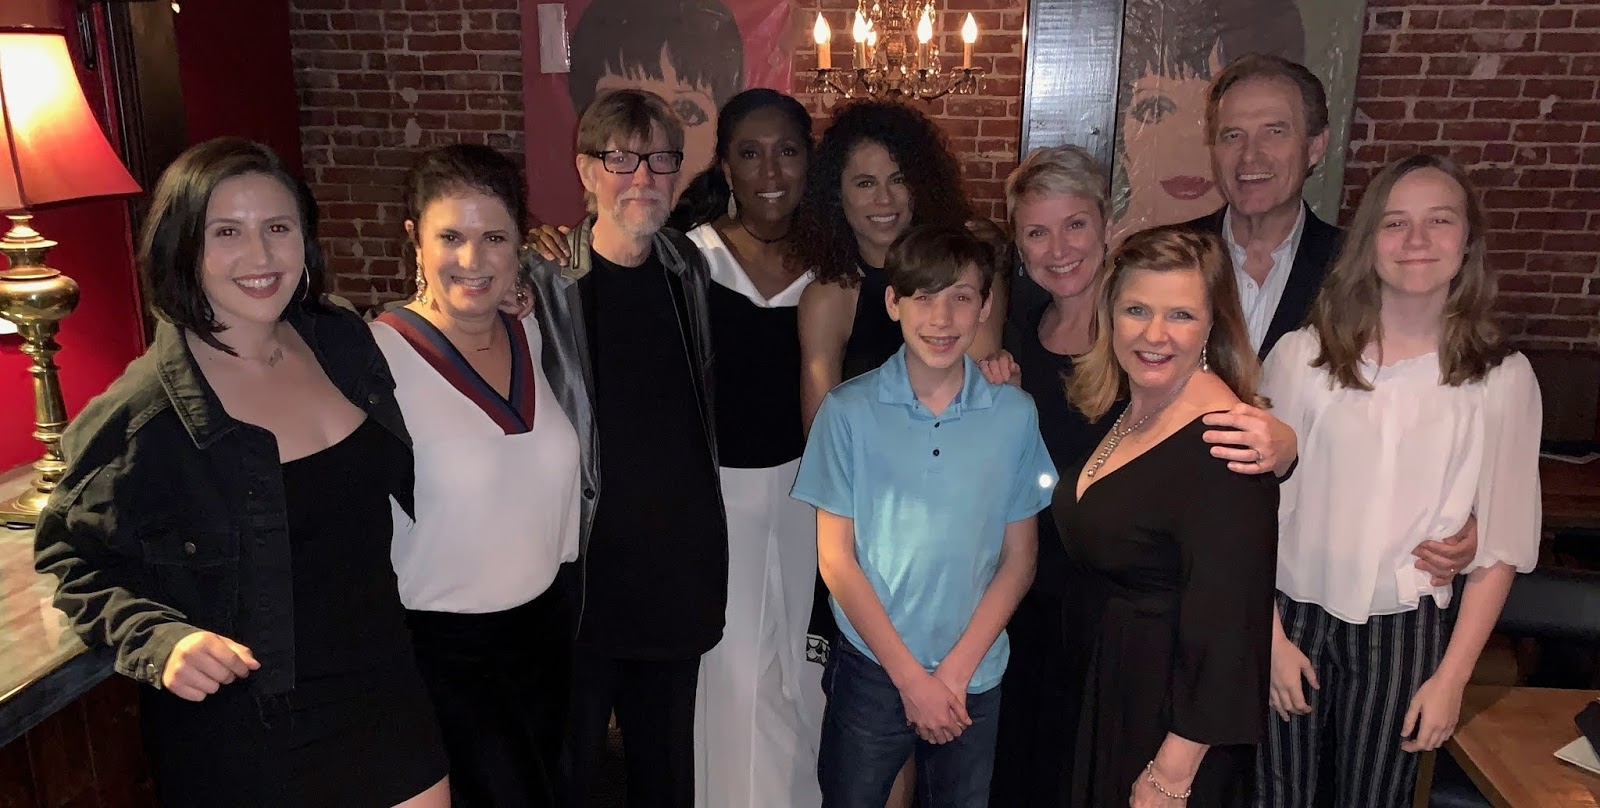 2a781c142 BWW Review: A CLASSIC BROADWAY MOTHER'S DAY - A Delightful Family Show